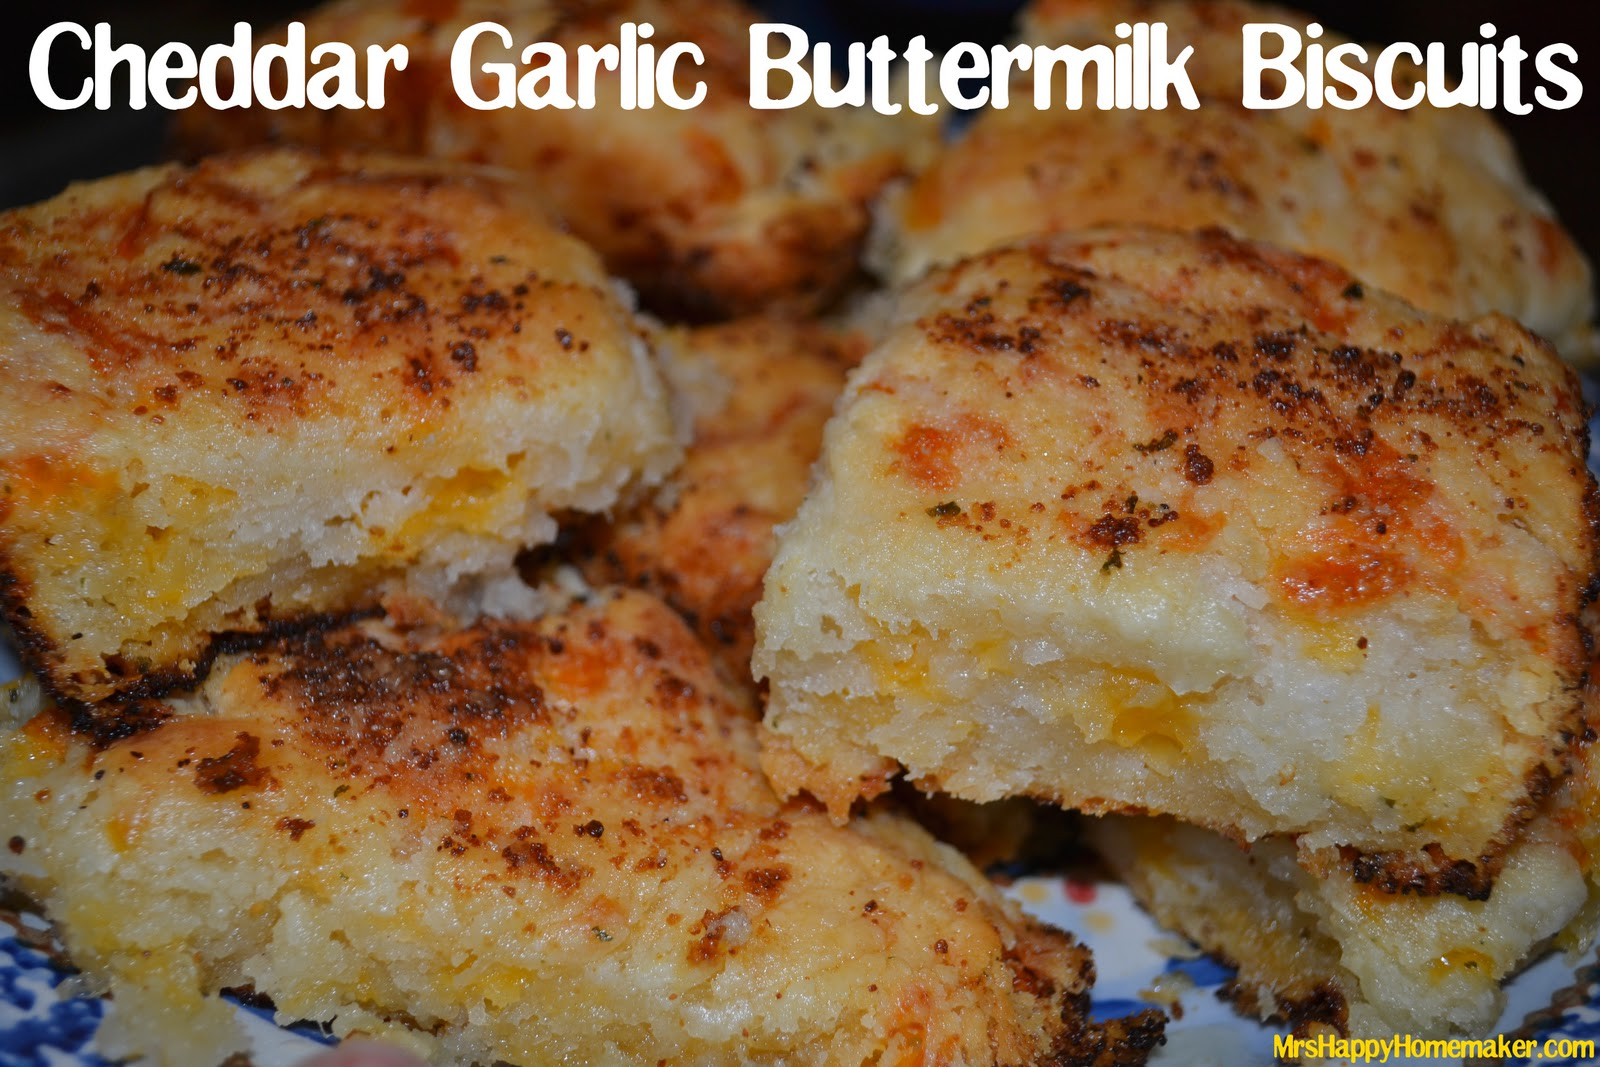 ... biscuits cheesy garlicy peppery biscuits buttermilk biscuits